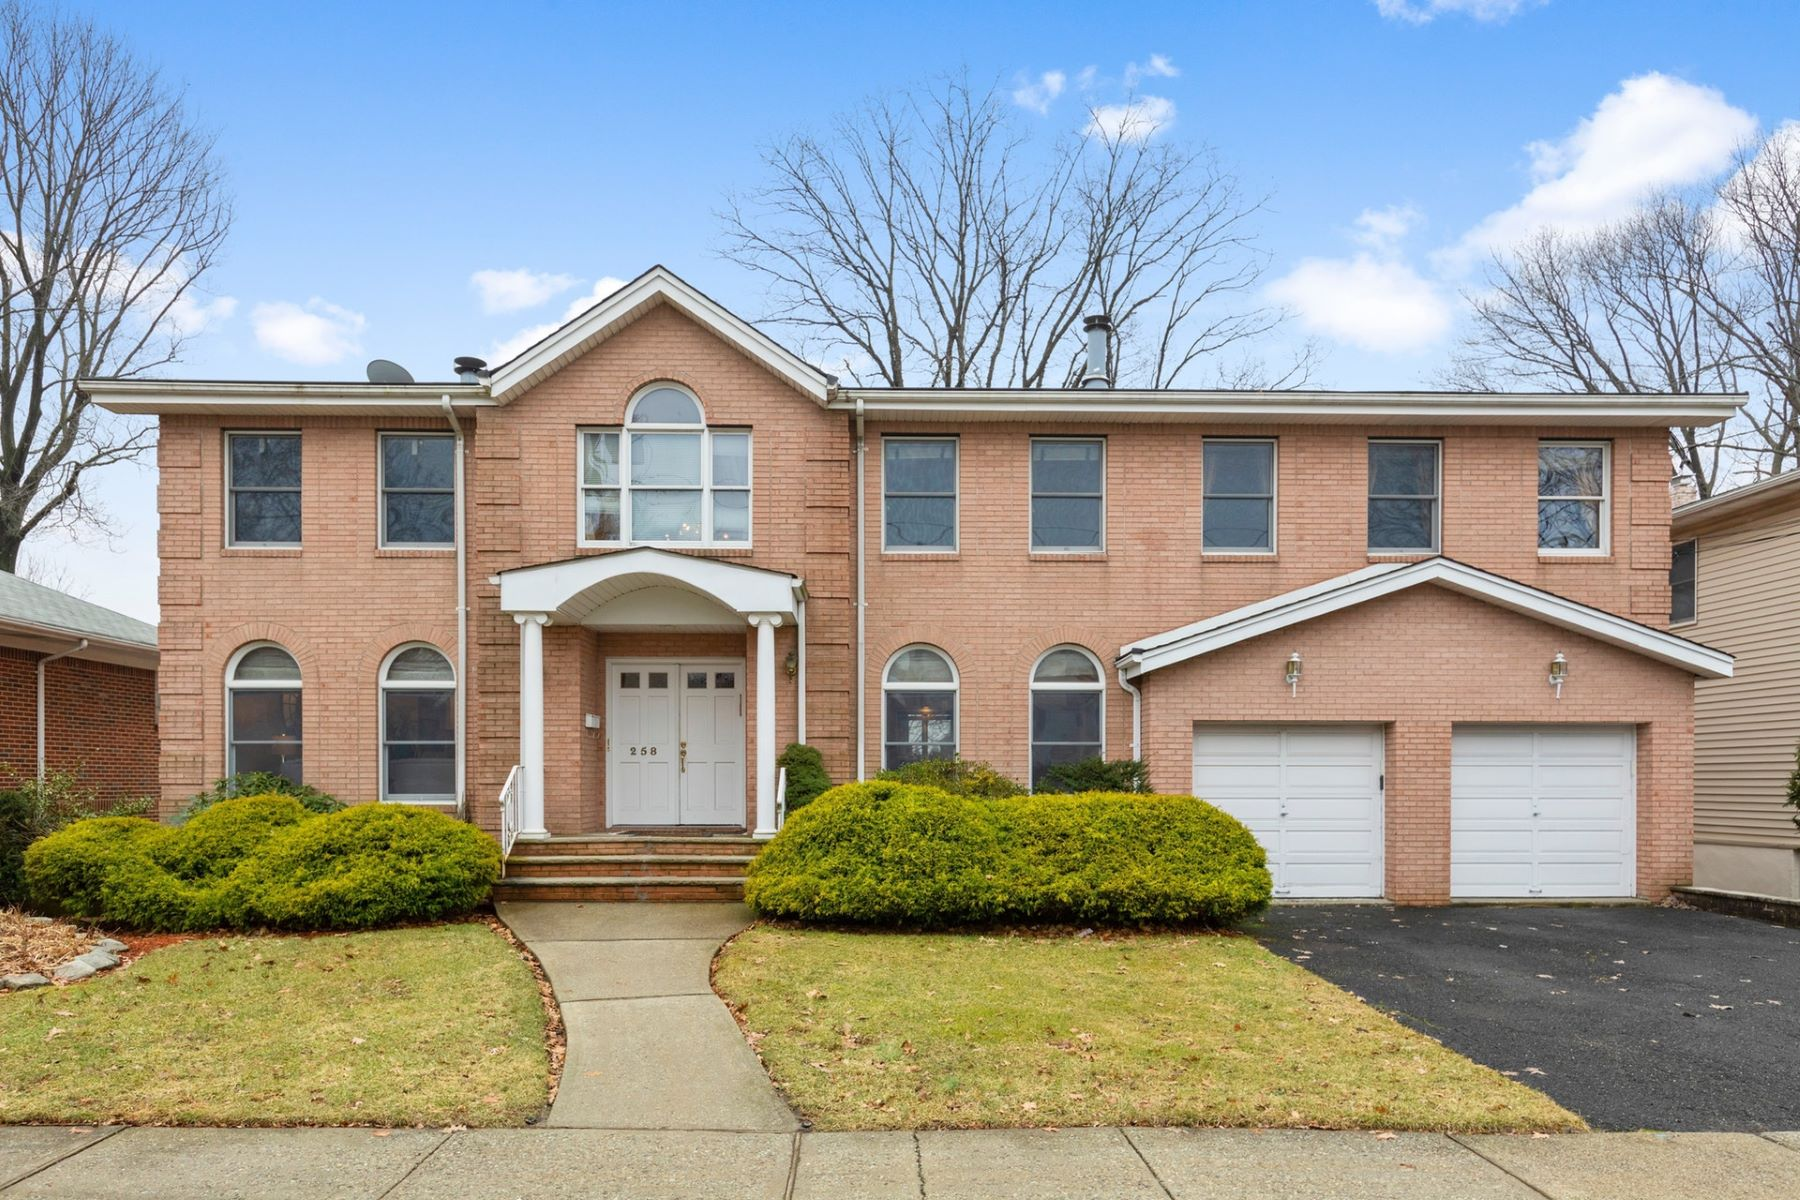 Single Family Home for Sale at Spectacular Colonial 258 Mccloud Dr, Fort Lee, New Jersey 07024 United States